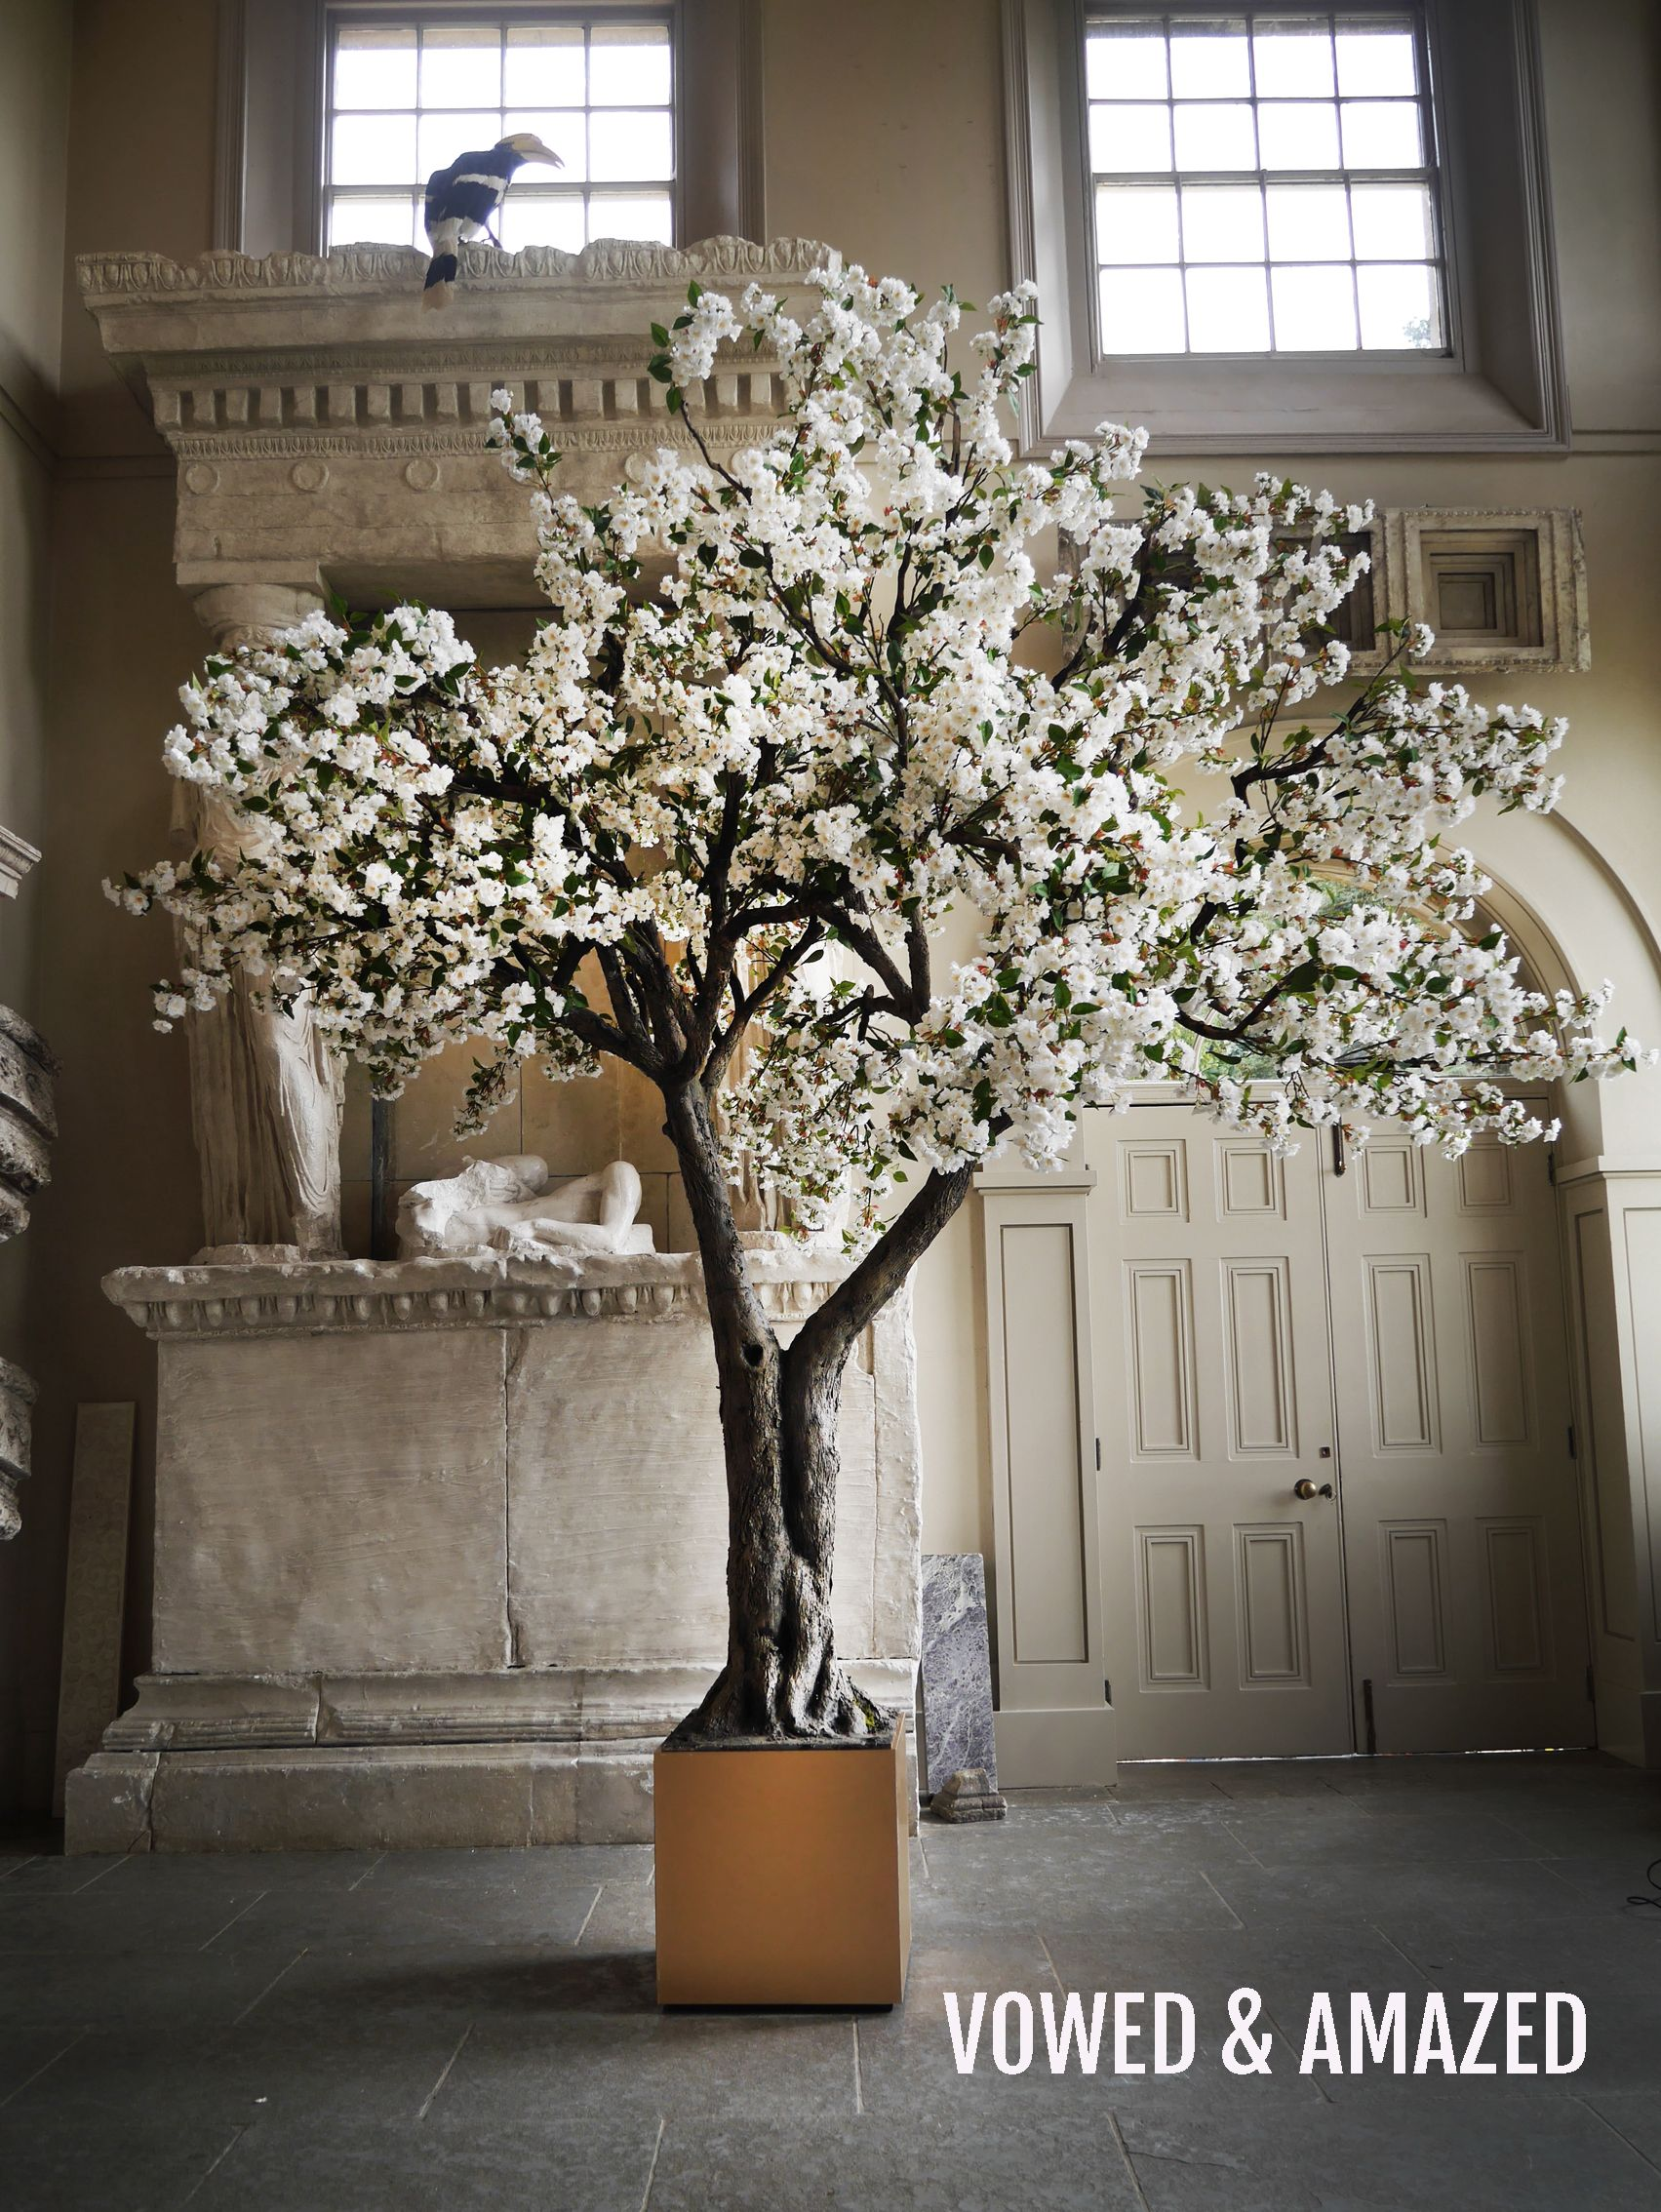 Our Extra Large Indoor Blossom Tree Makes An Amazing Centrepiece At Any Wedding Or Event Shoot Artificial Cherry Blossom Tree Blossom Trees White Blossom Tree